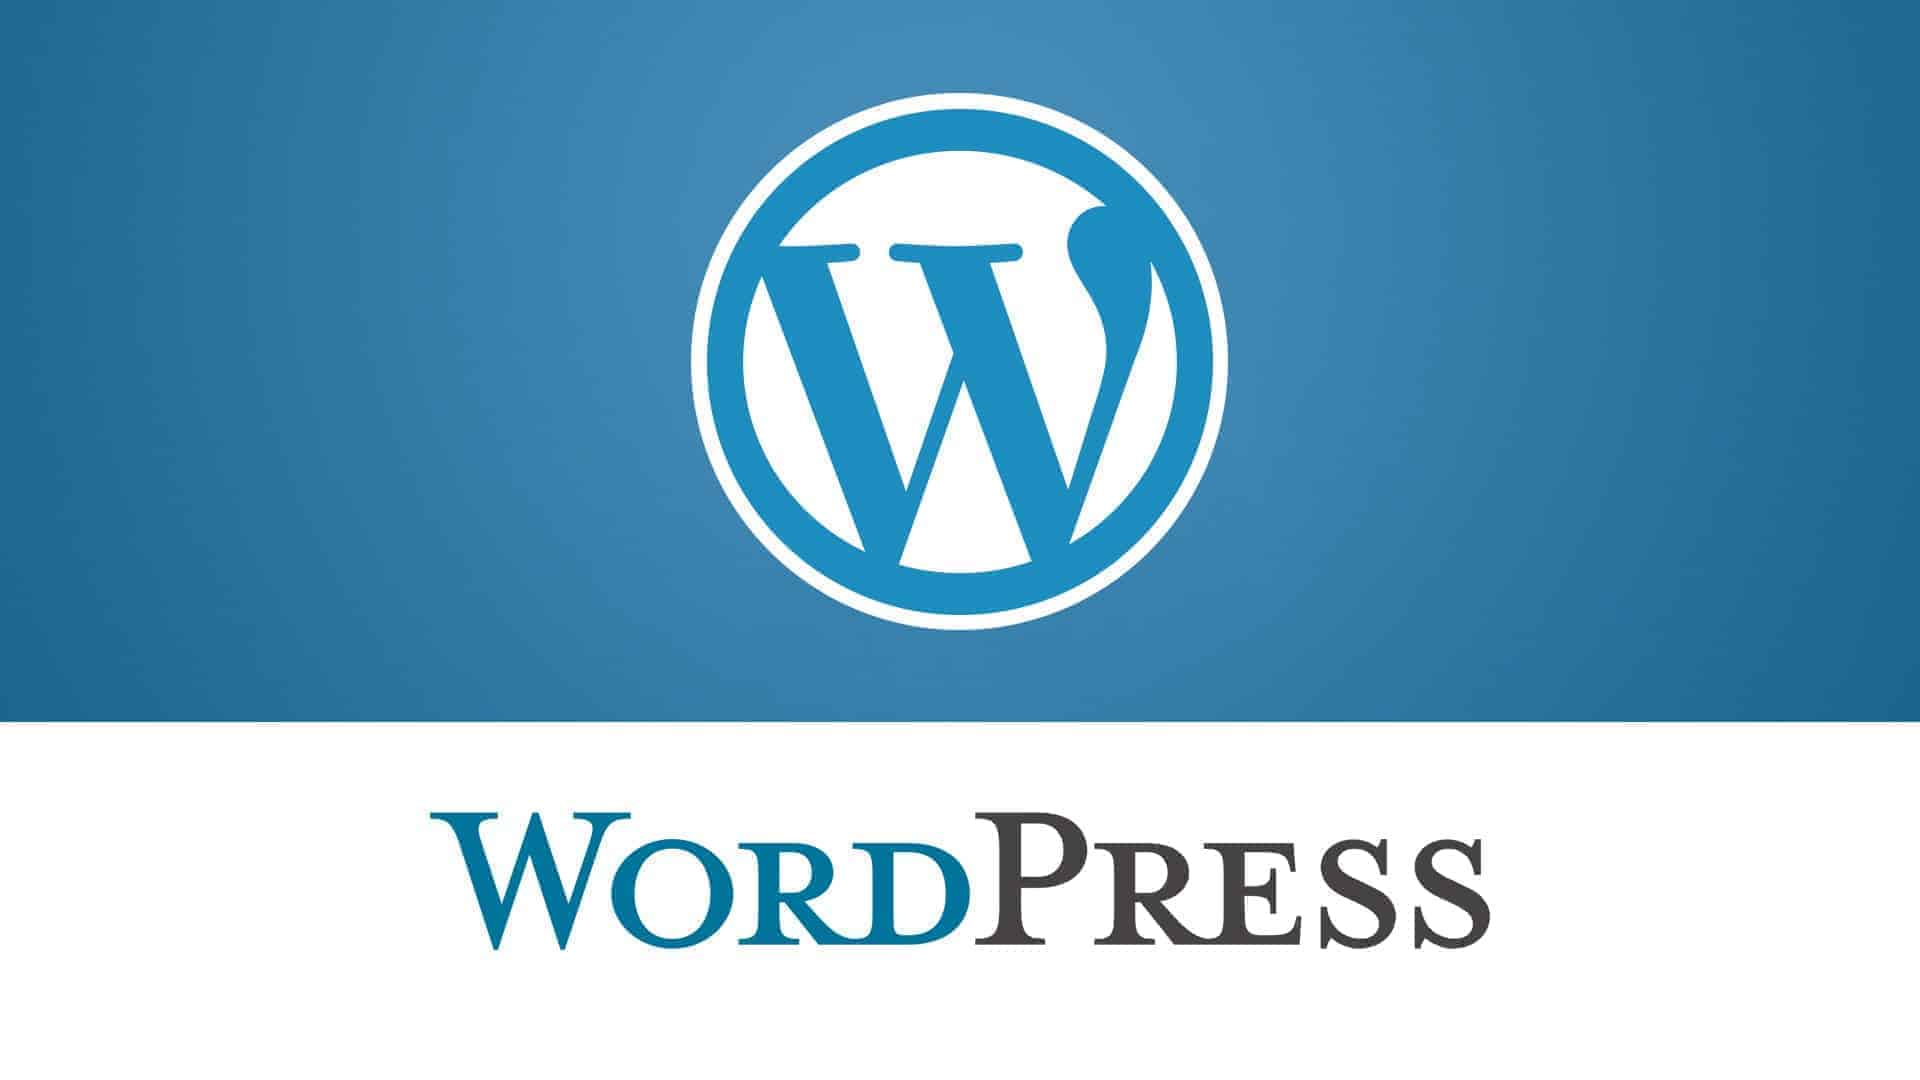 WordPress is the world's most popular CMS software, and powers around 35% of all websites